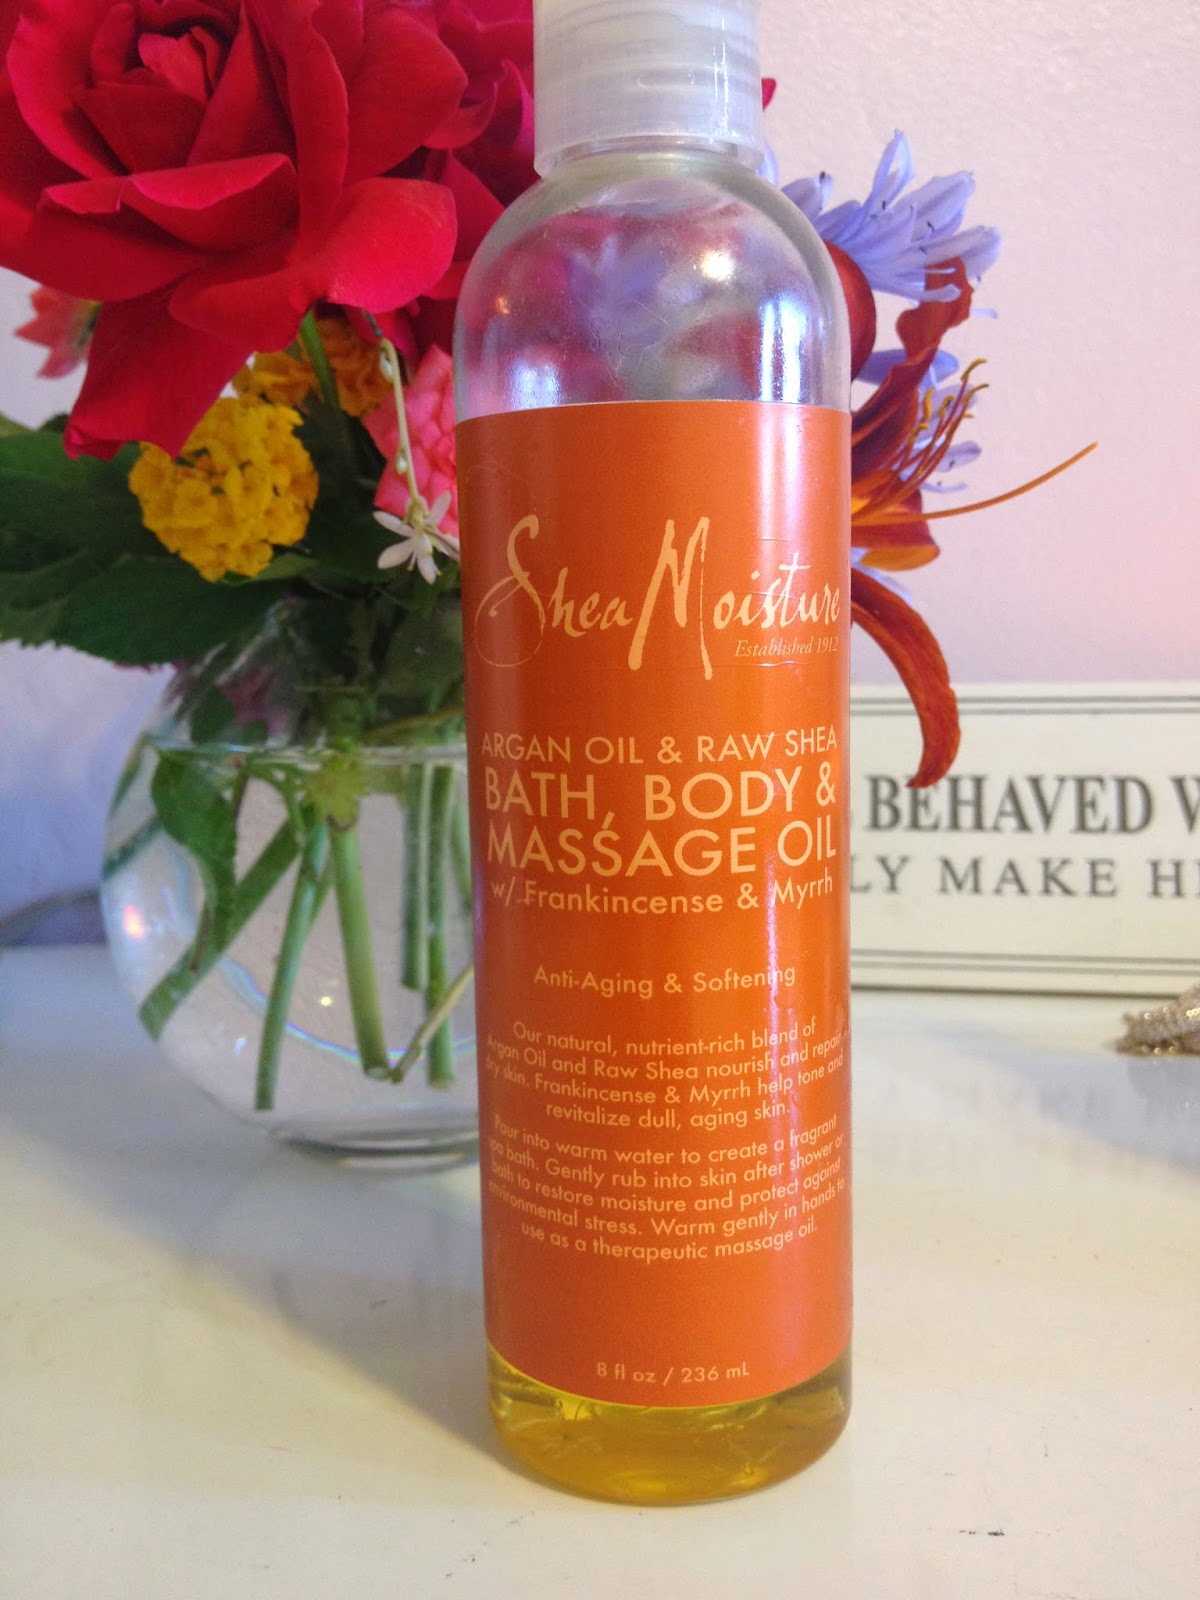 Argan Oil & Raw Shea Bath, Body & Massage Oil Frankincense & Myrrh Extract ($9.99)